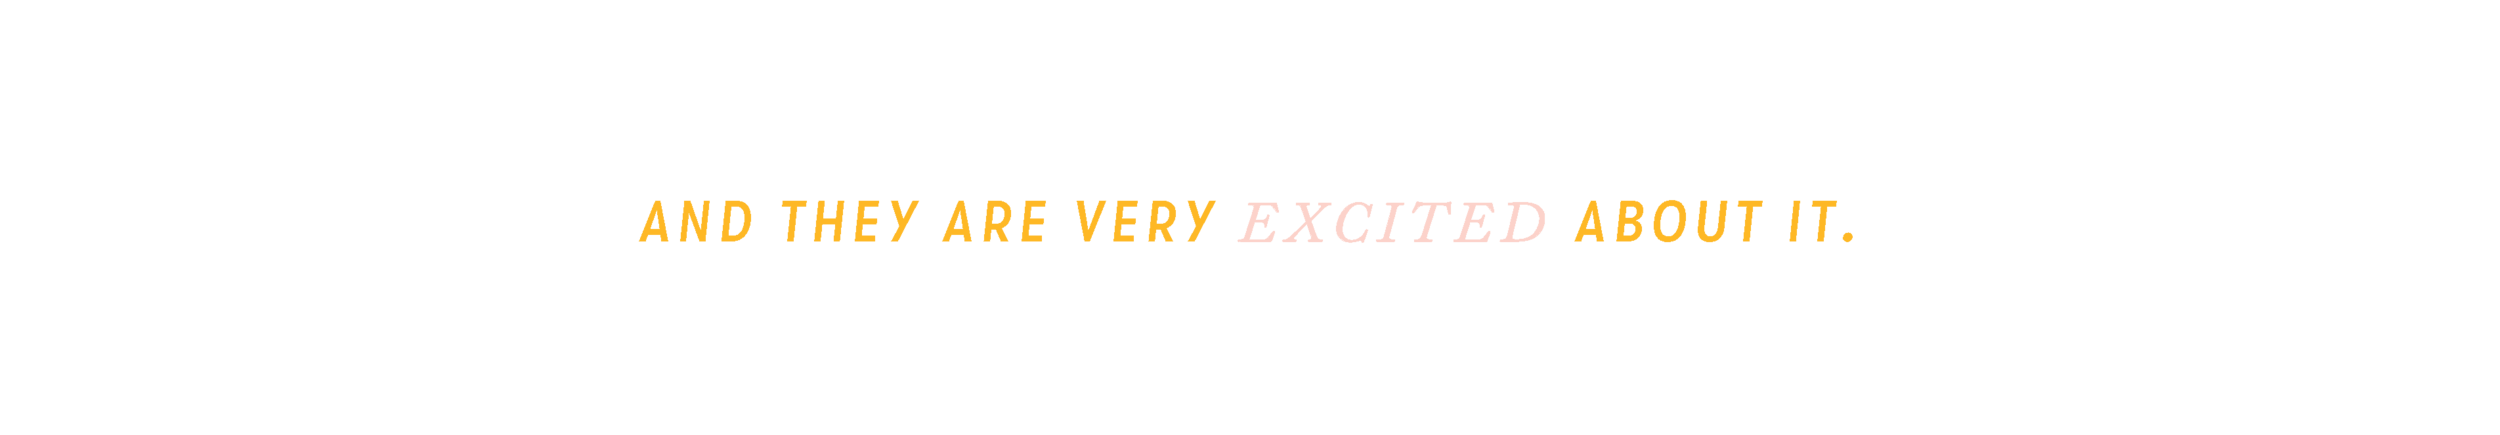 Very-Excited_8 copy.png